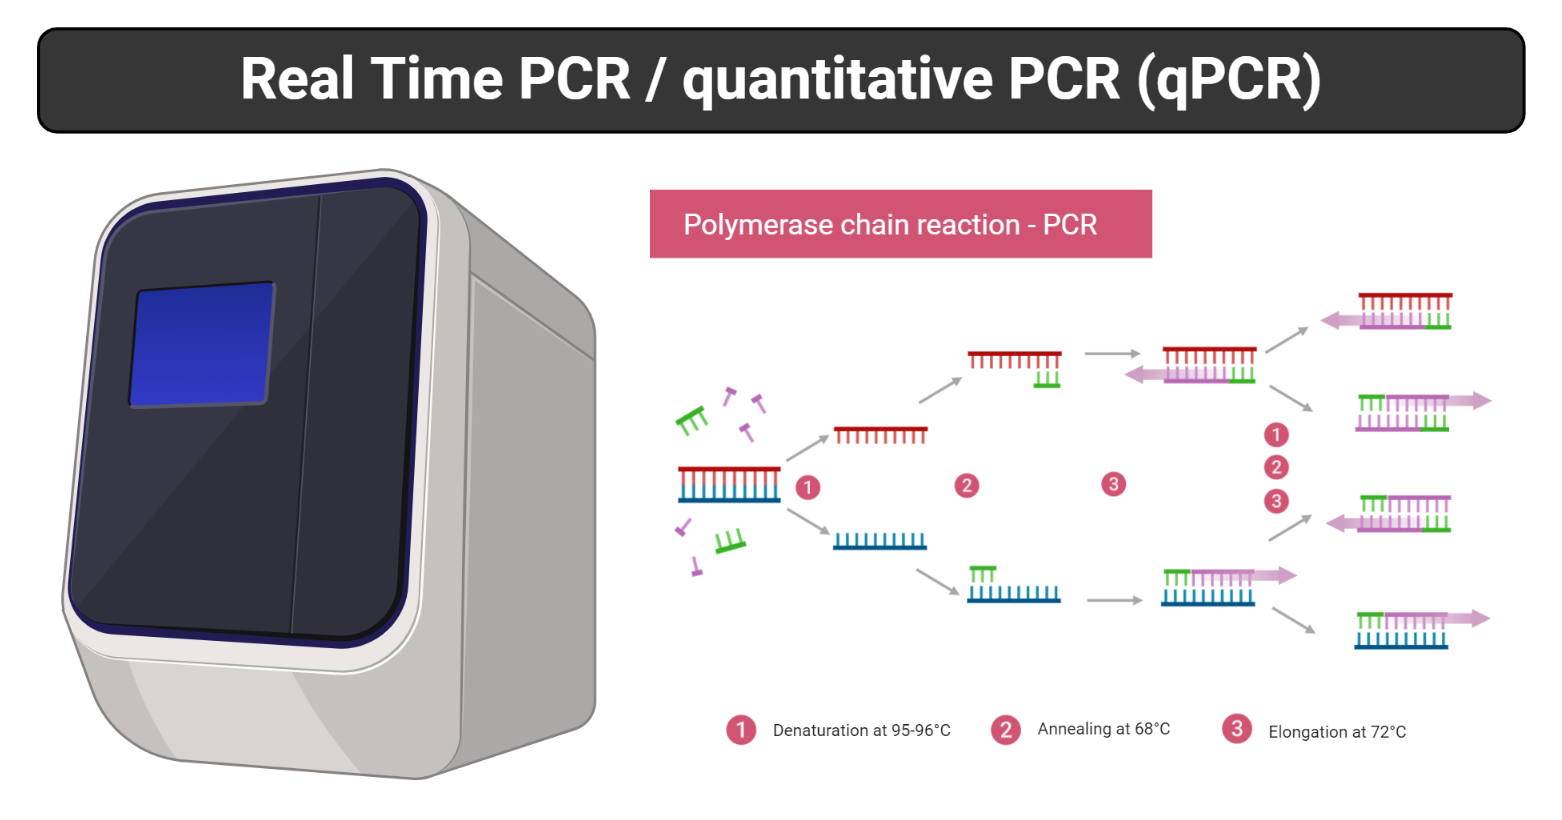 Real Time PCR- Principle, Process, Markers, Advantages, Uses